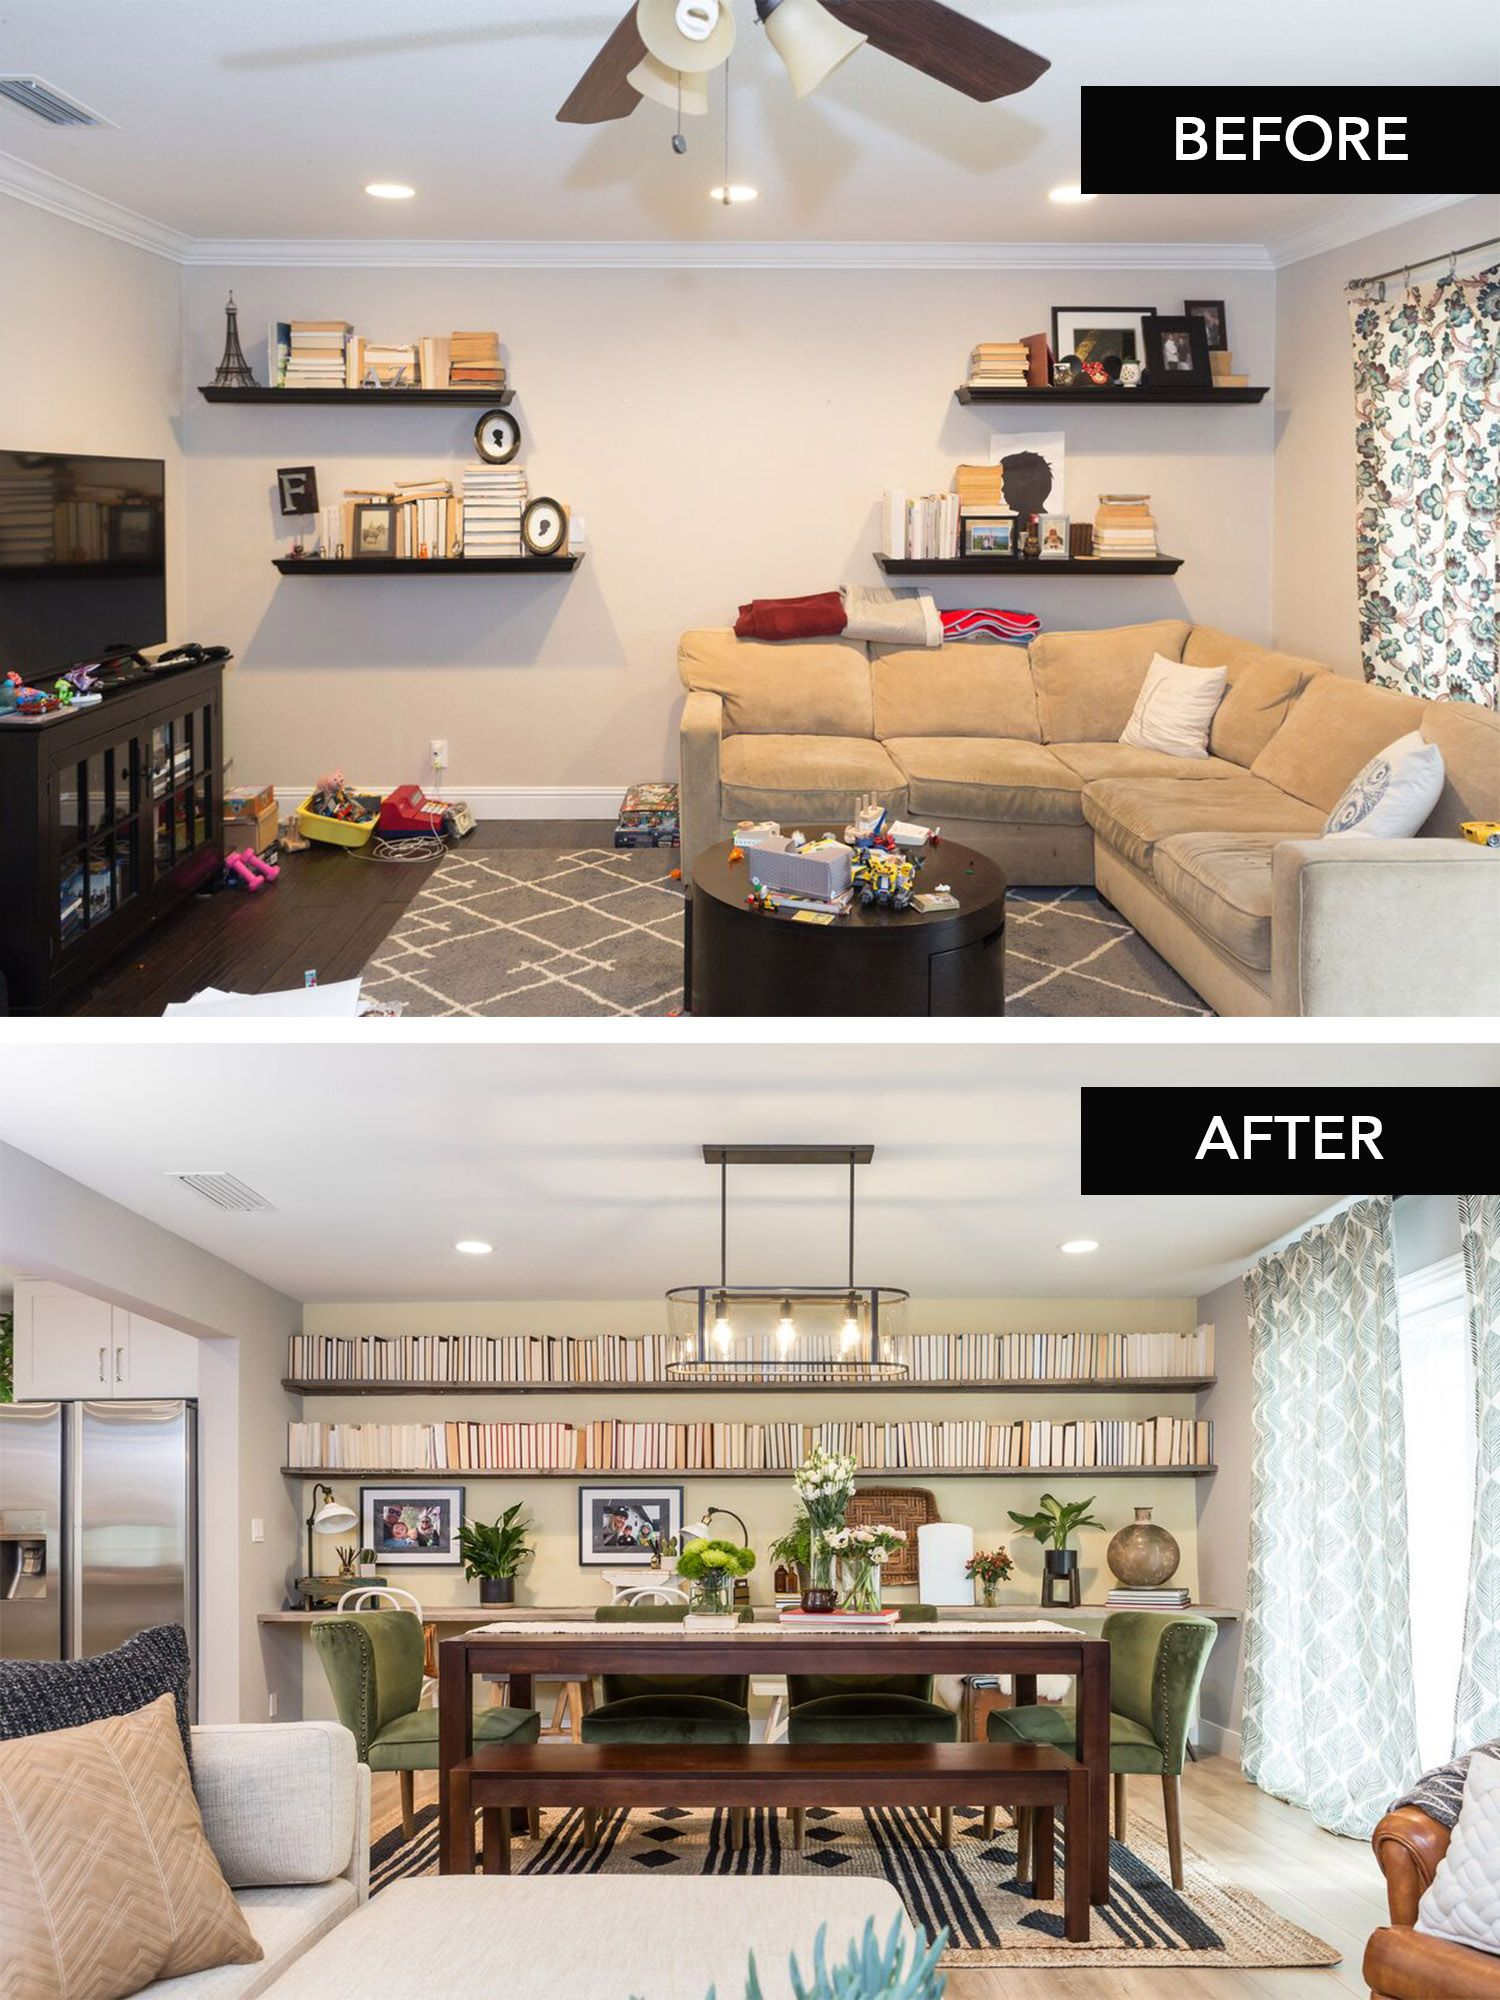 Before After Episode 6 Hgtv S Hiddenpotential Interior Remodel Guest Room Office Decorating Small Spaces